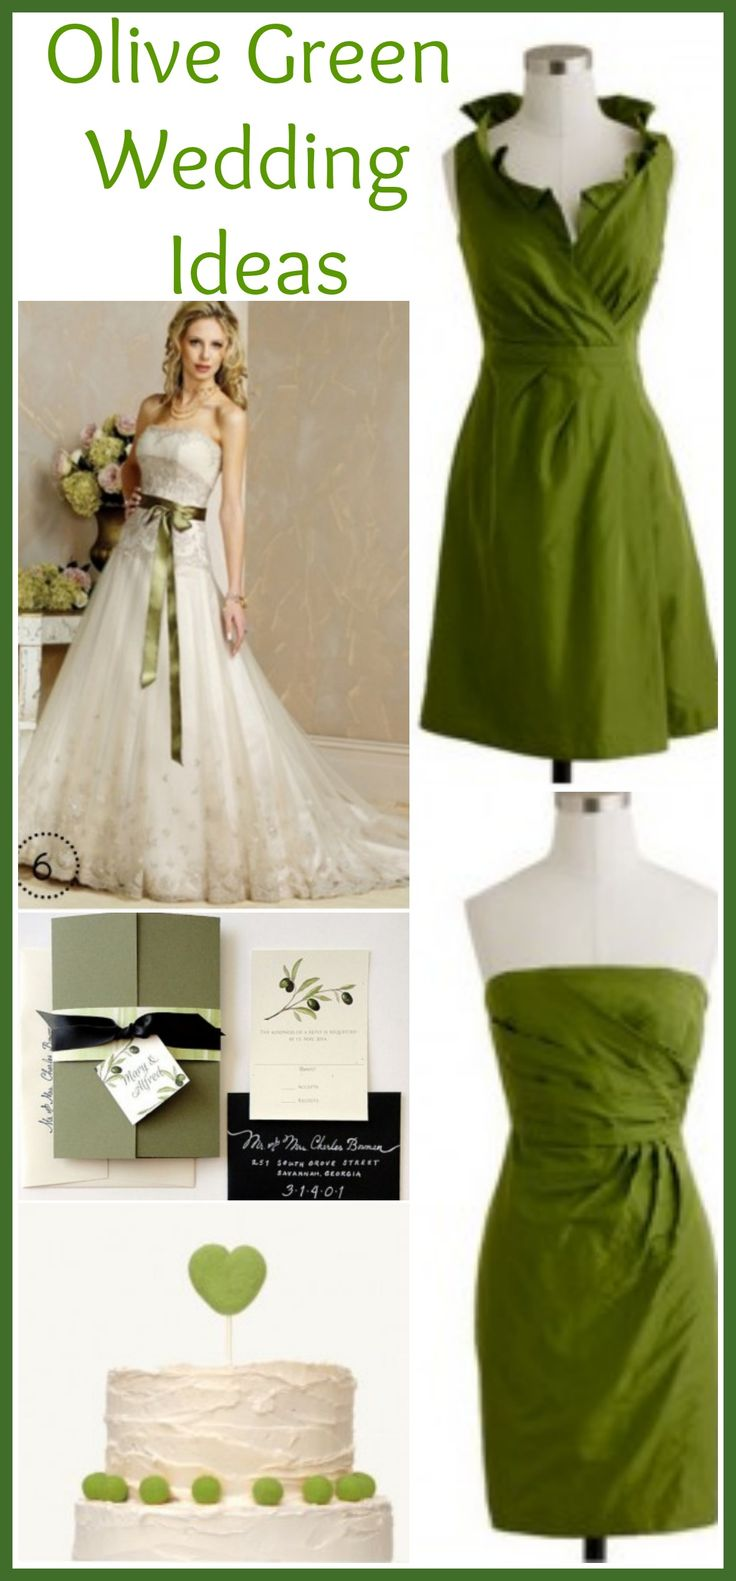 1000 images about olive wedding on pinterest green for Olive green wedding dresses